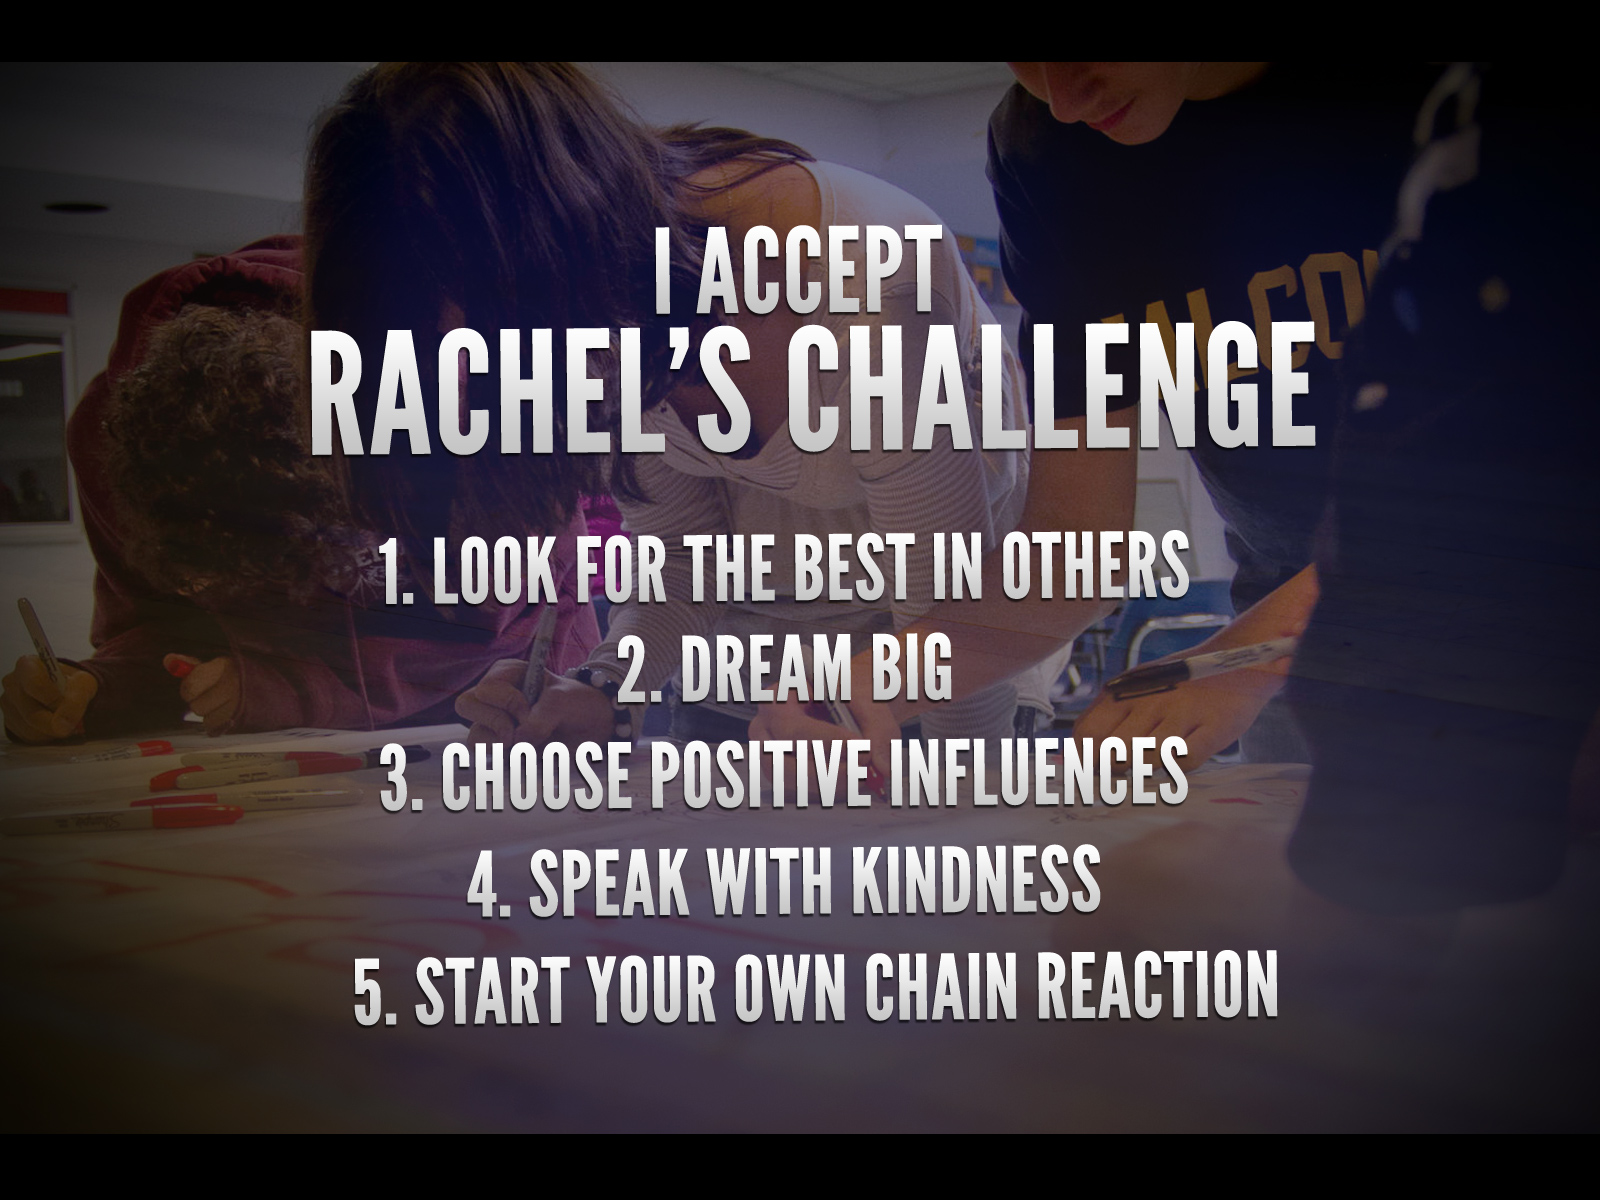 List of Rachel's challenges. 1 Look for the best in others. 2. Dream big. 3. Choose positive influences. 4. Speak with kindness. 5. Start your own chain reaction.